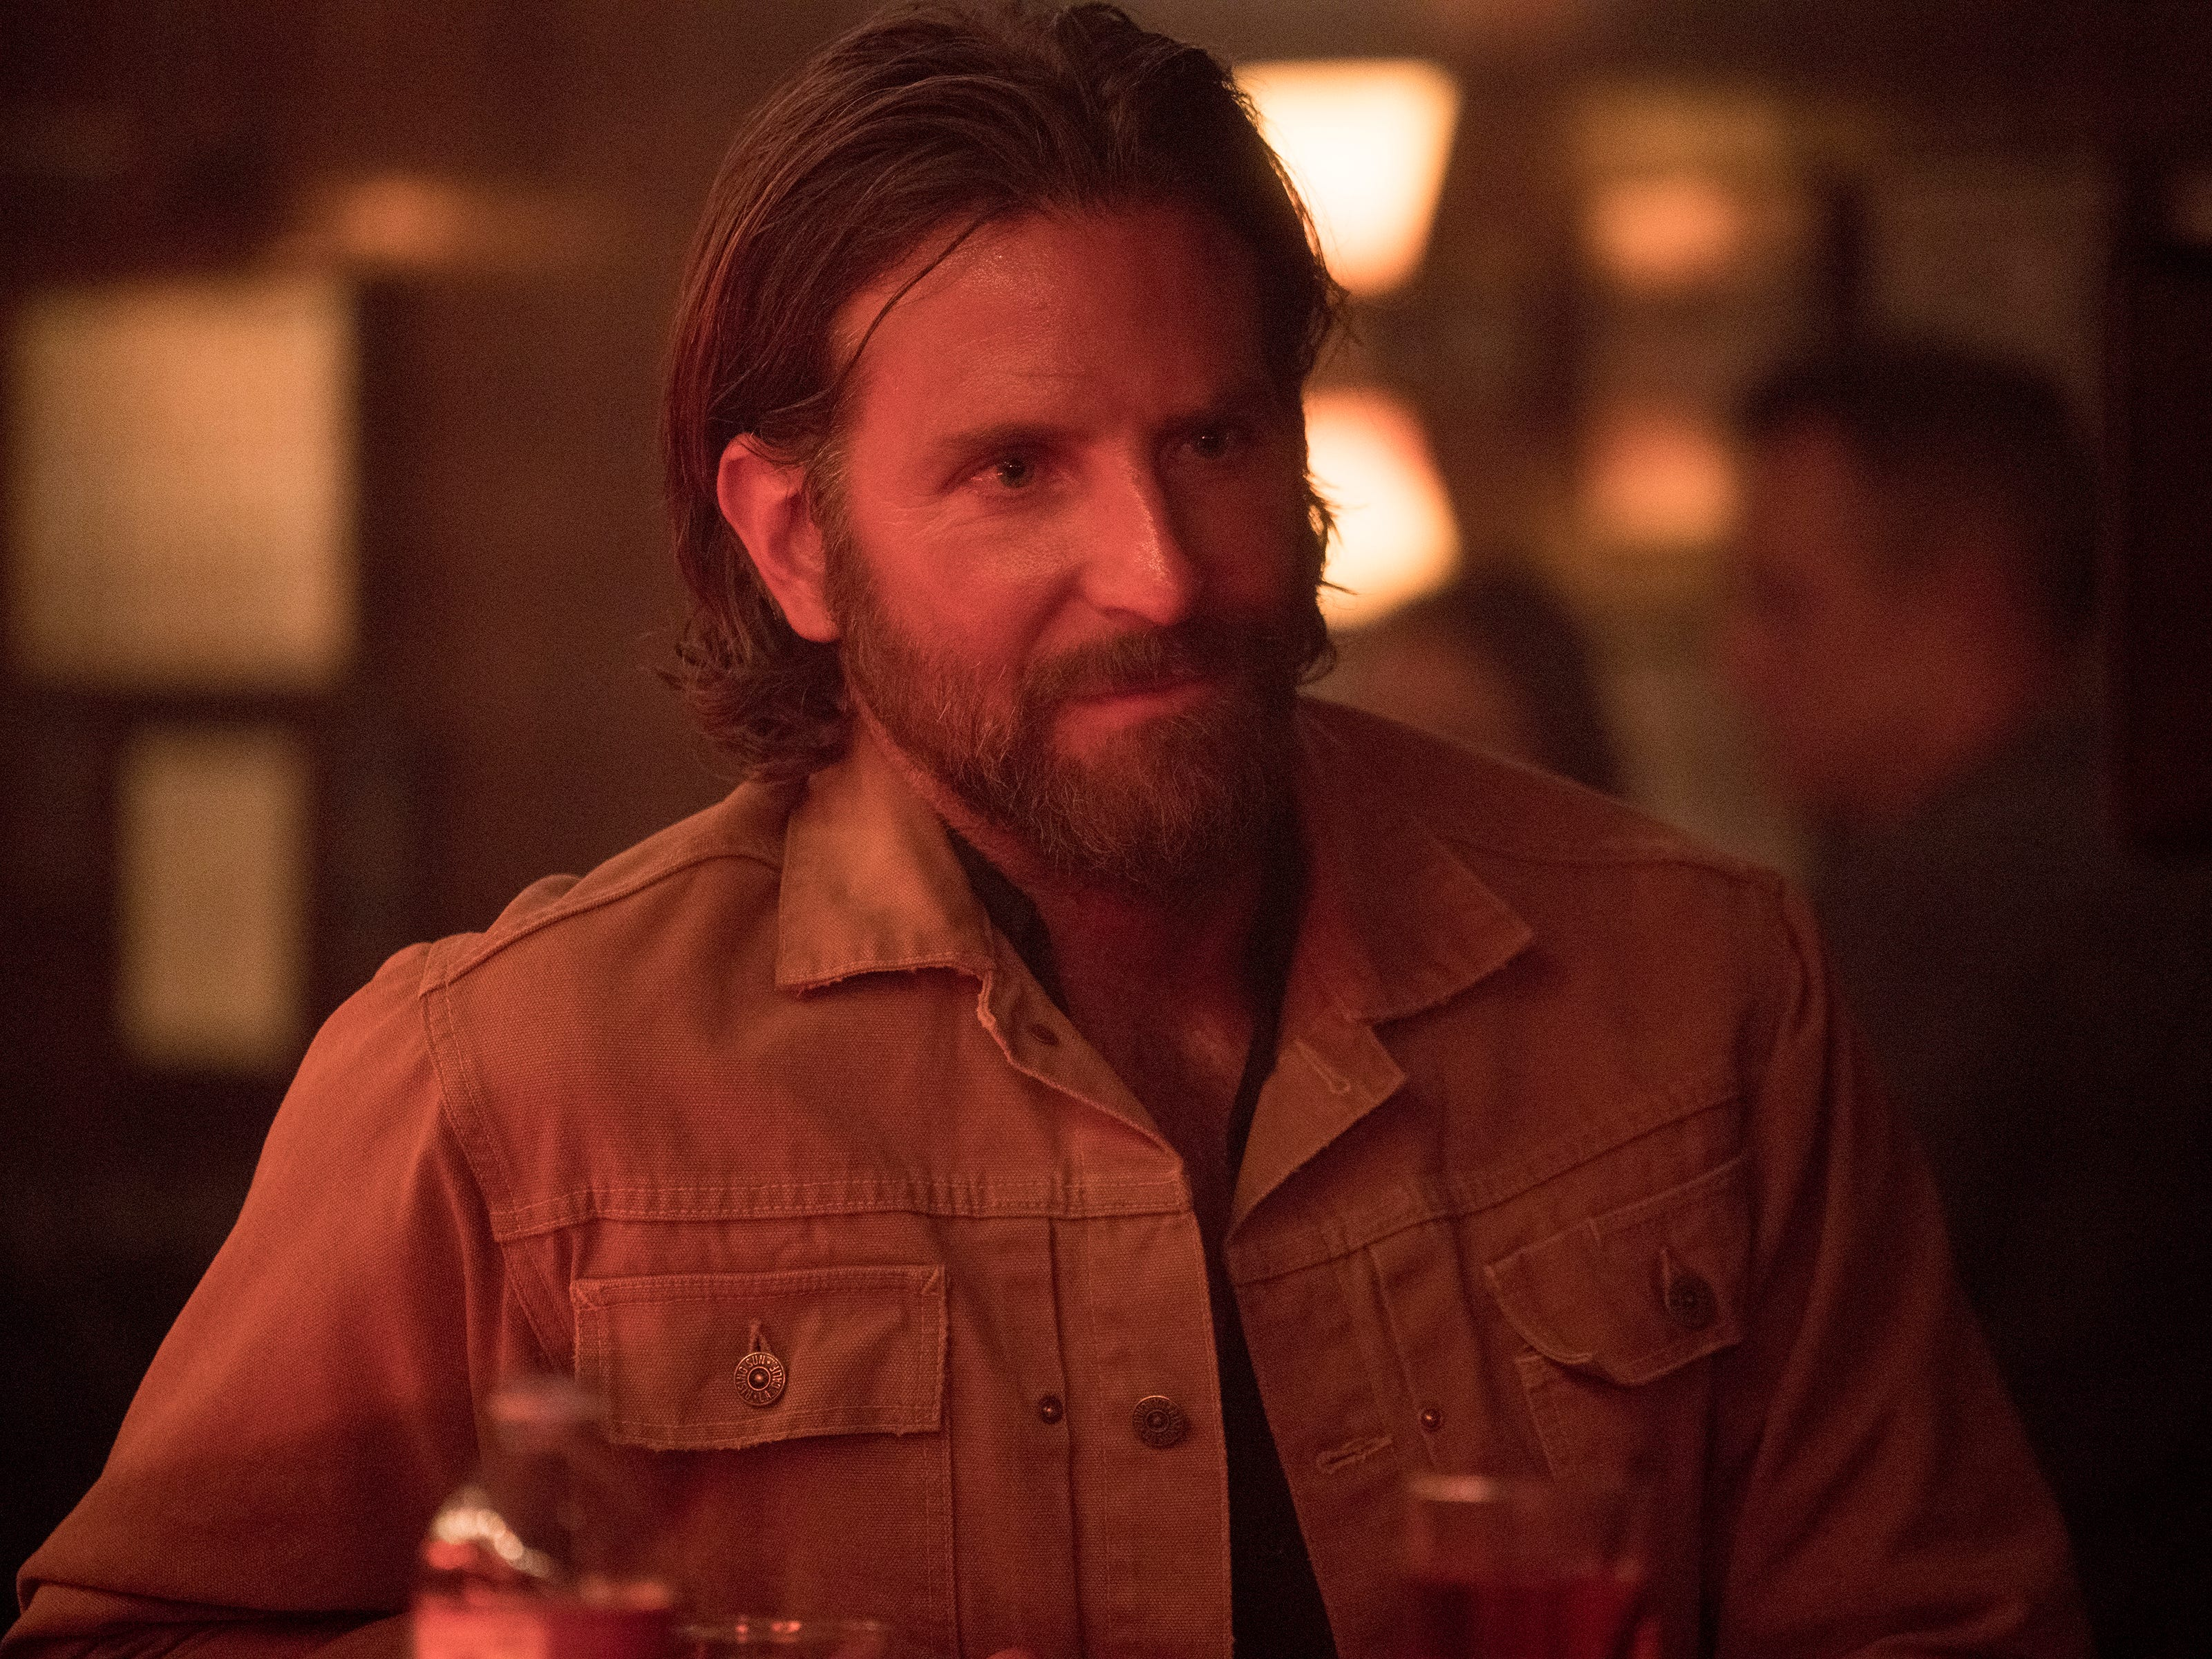 "This image released by Warner Bros. shows Bradley Cooper in a scene from the latest reboot of the film, ""A Star is Born."" On Thursday, Dec. 6, 2018, Cooper was nominated for a Golden Globe award for lead actor in a motion picture drama for his role in the film. The 76th Golden Globe Awards will be held on Sunday, Jan. 6. (Clay Enos/Warner Bros. via AP) ORG XMIT: NYET817"